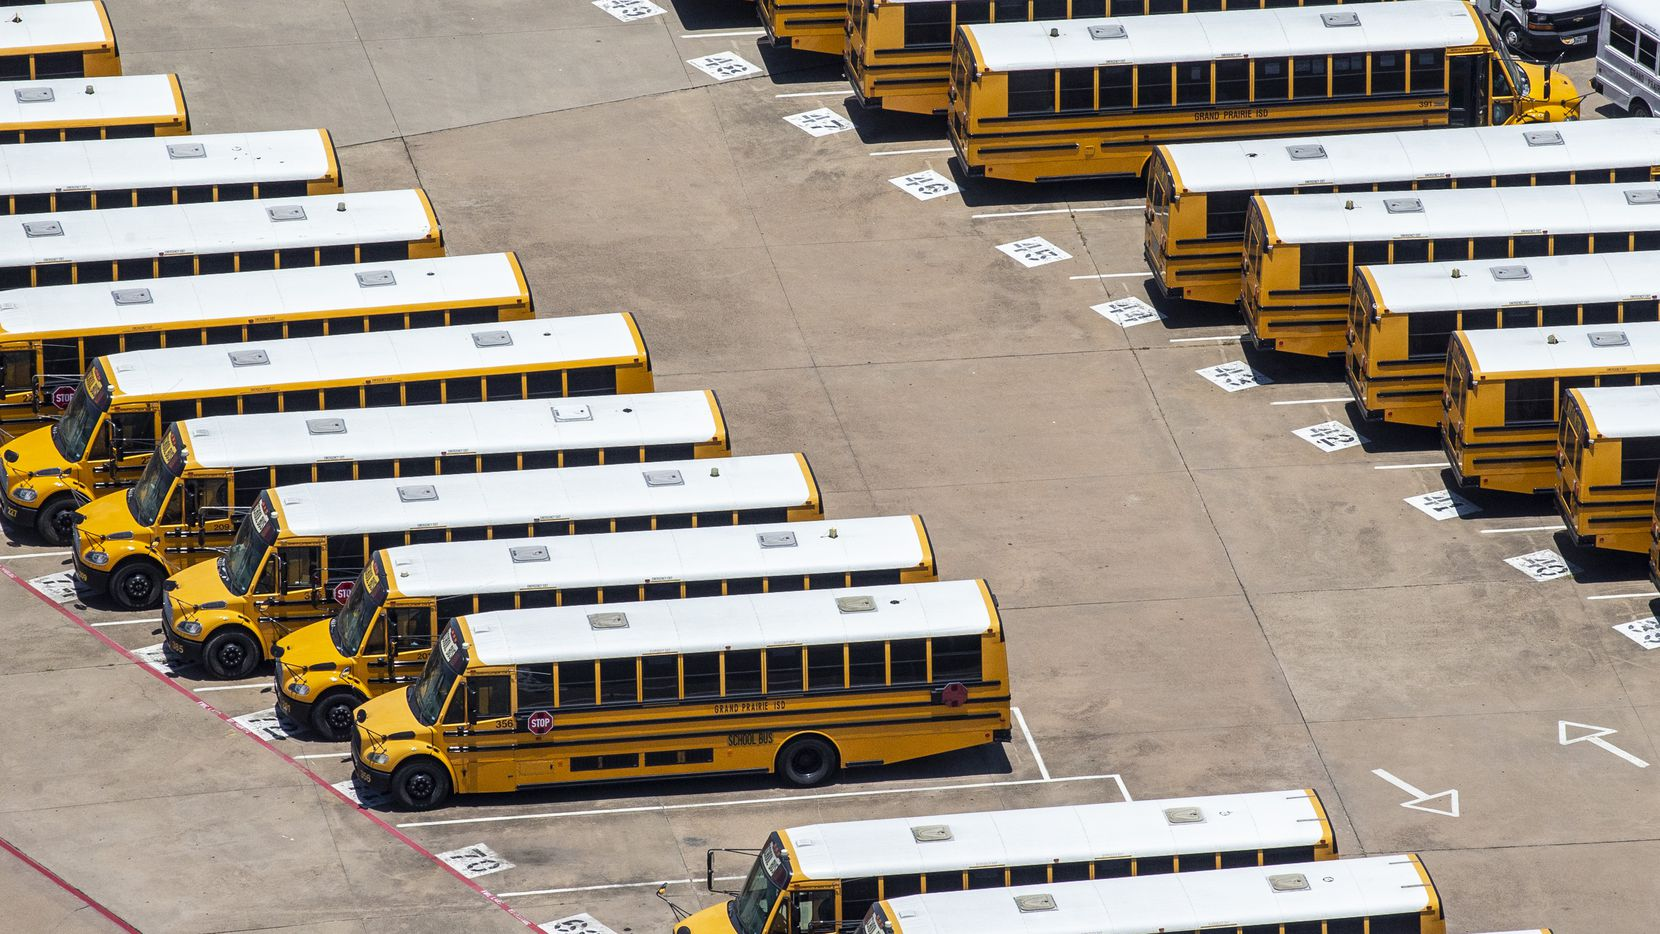 Buses are lined up at the Grand Prairie ISD Maintenance and Operations building in Grand Prairie. Grand Prairie High School closed Monday because of a power outage.